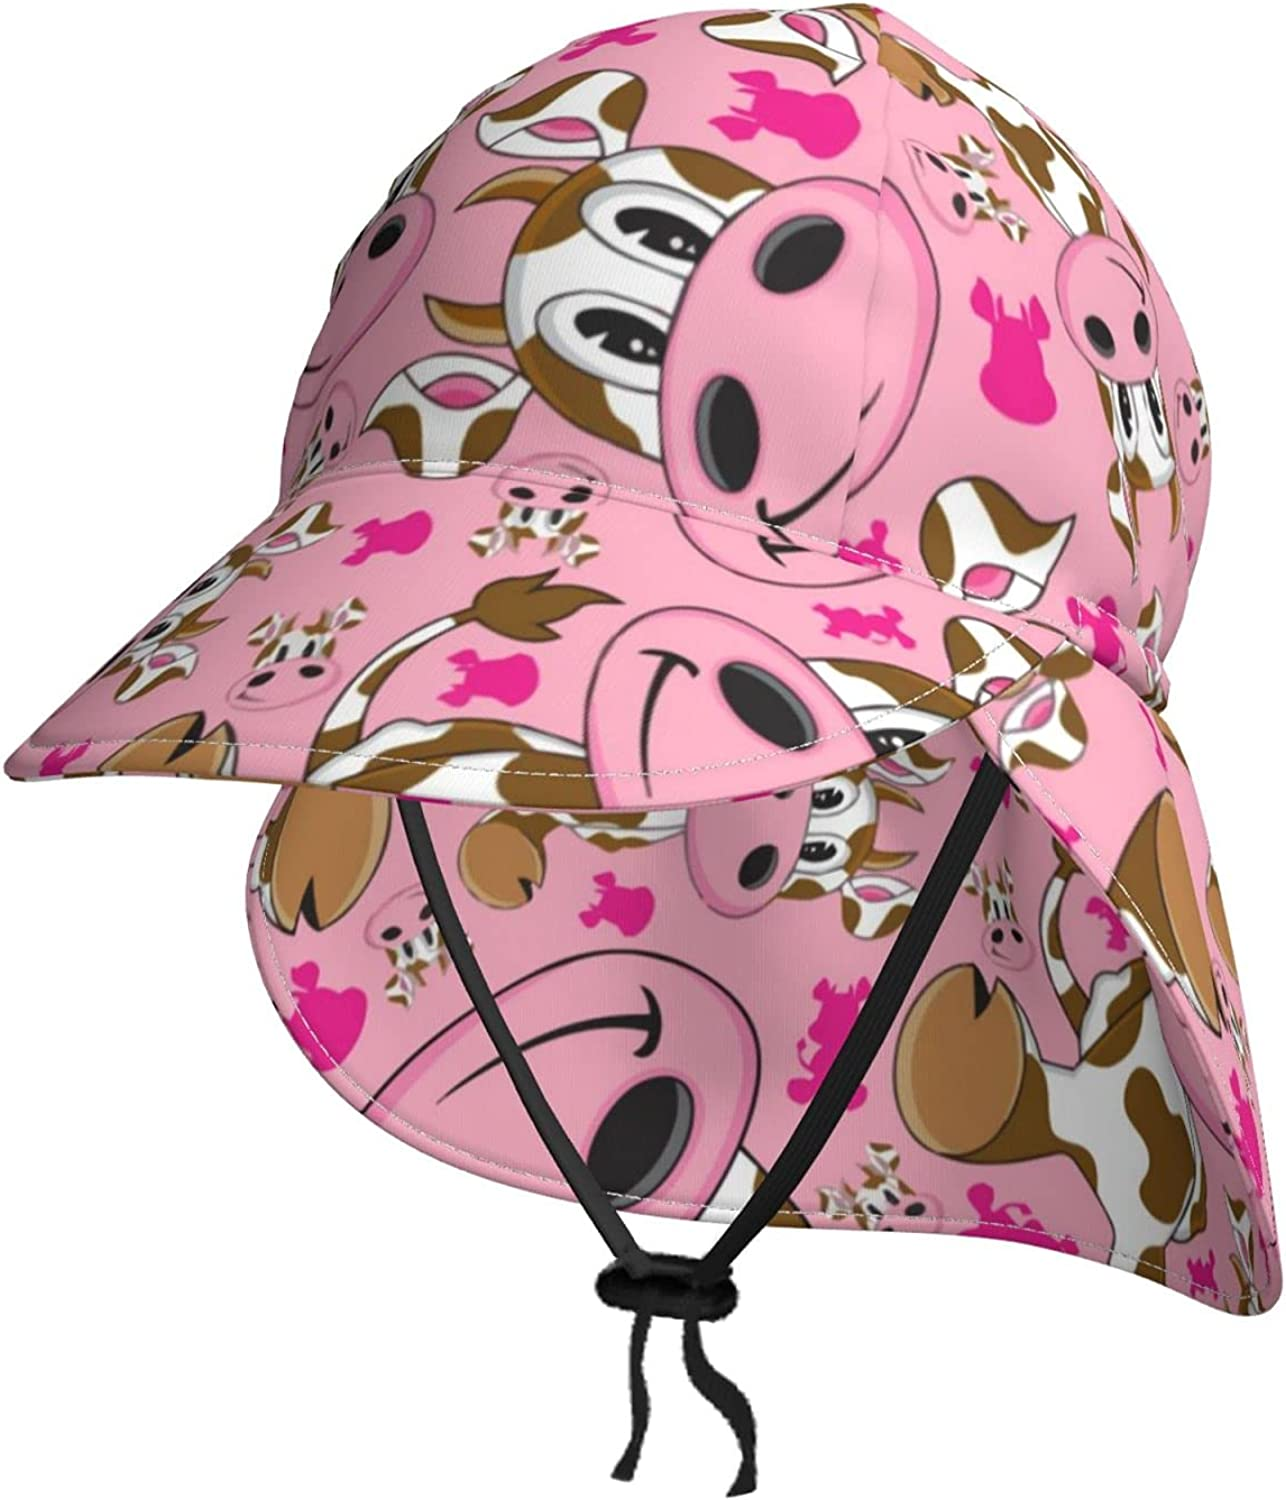 Unisex Baby Sun Hat Cartoon Pink 67% OFF of free shipping fixed price Adjustable Summer Kids Cattle B